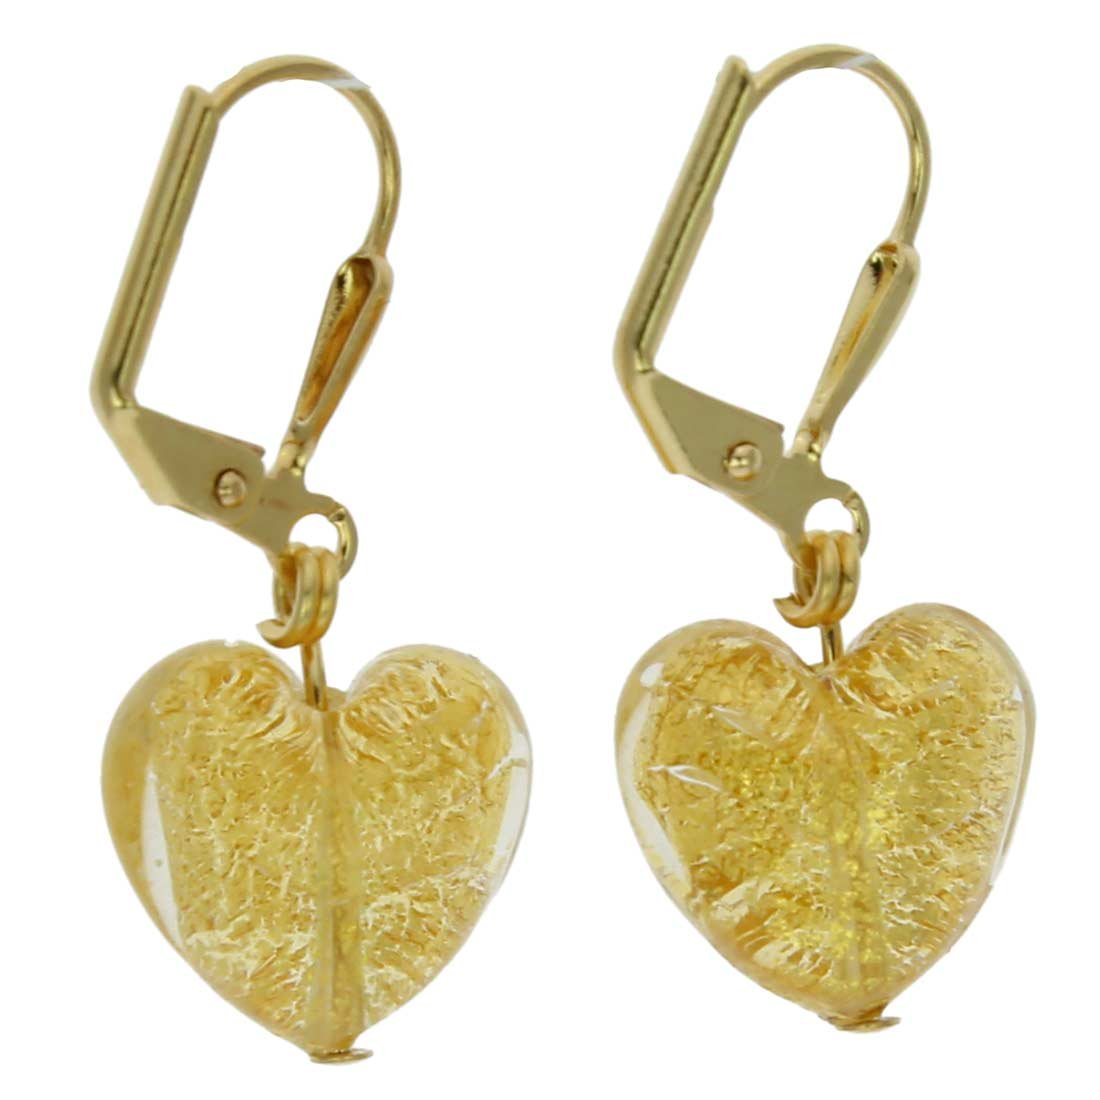 GlassOfVenice Murano Glass Ca D'Oro Heart Earrings - Yellow Gold